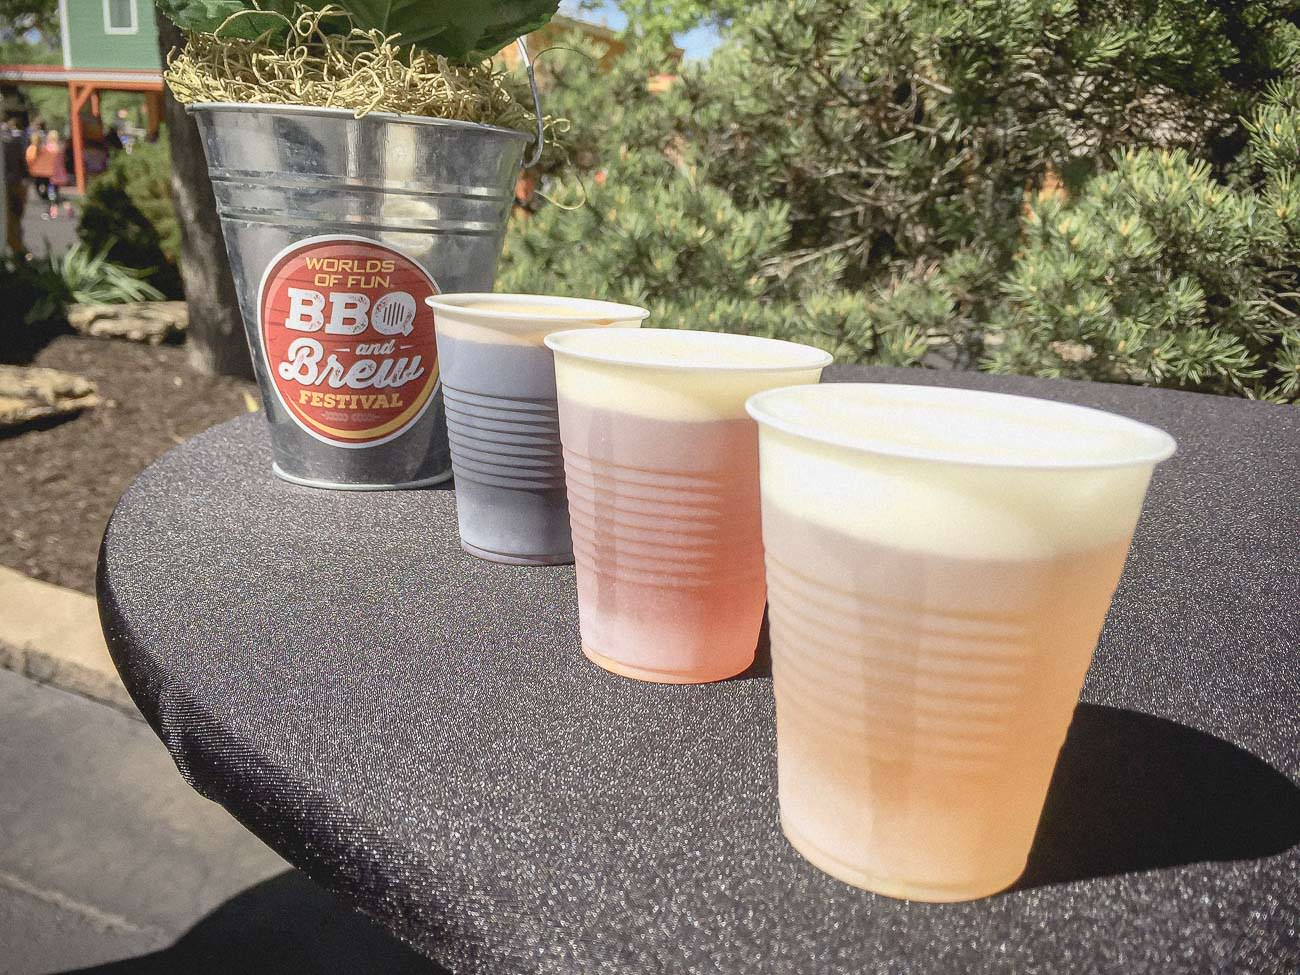 http://withsaltandwit.com/worlds-of-fun-hosts-all-american-bbq-brew-festival/